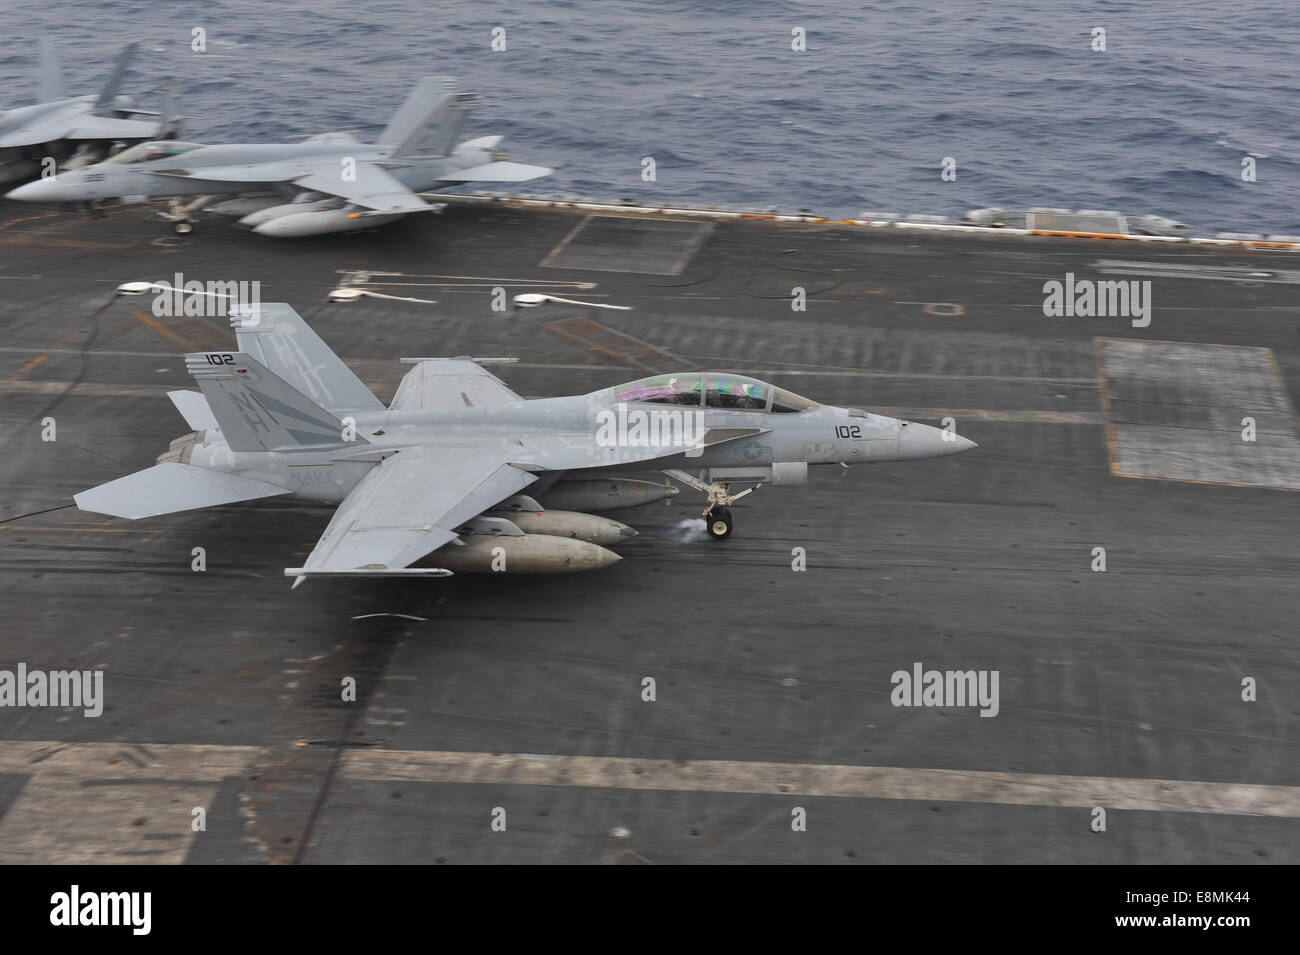 South China Sea, November 23, 2013 - An F/A-18F Super Hornet lands on the flight deck aboard the aircraft carrier - Stock Image